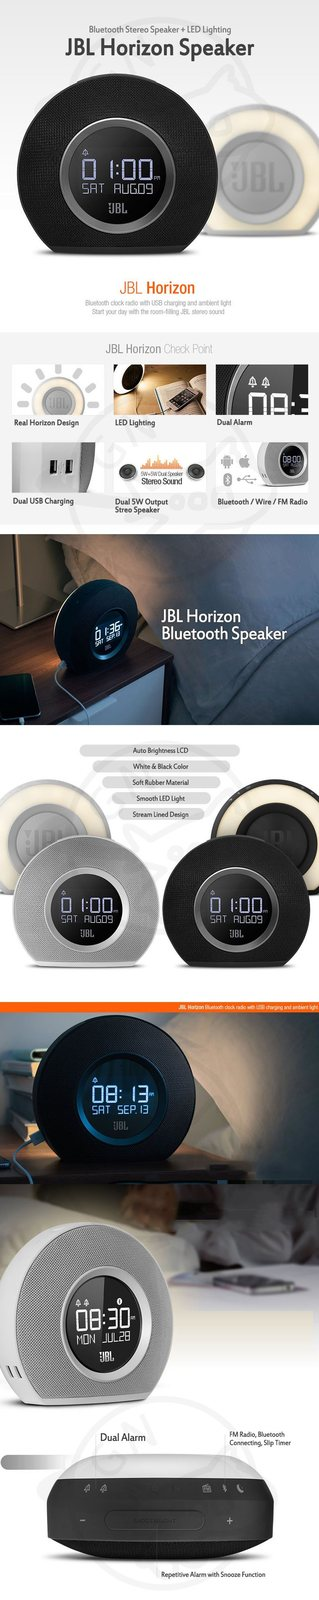 JBL JBL Horizon Speaker Bluetooth Stereo Speaker + LED Lighting Clock